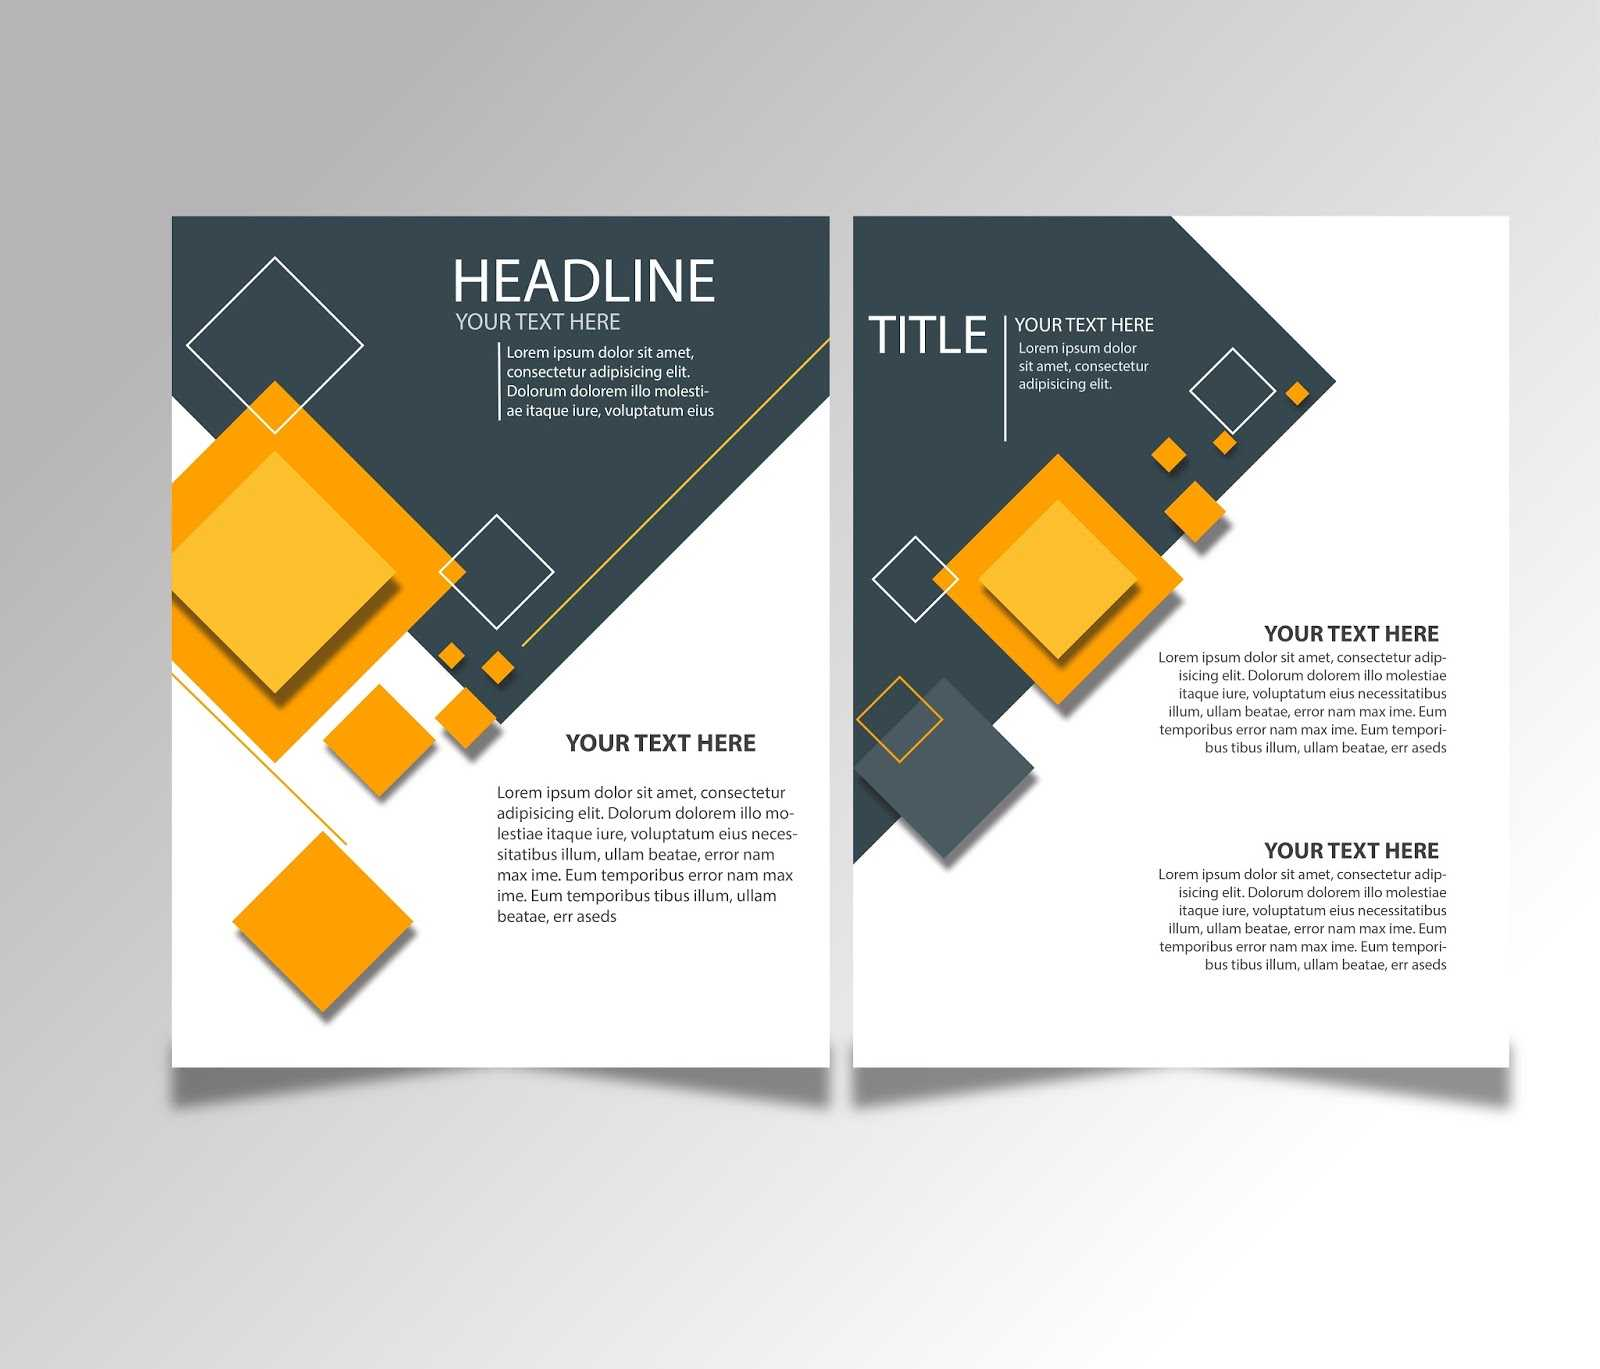 026 Hotel Brochure Templates Free Download For Word Design Regarding Creative Brochure Templates Free Download